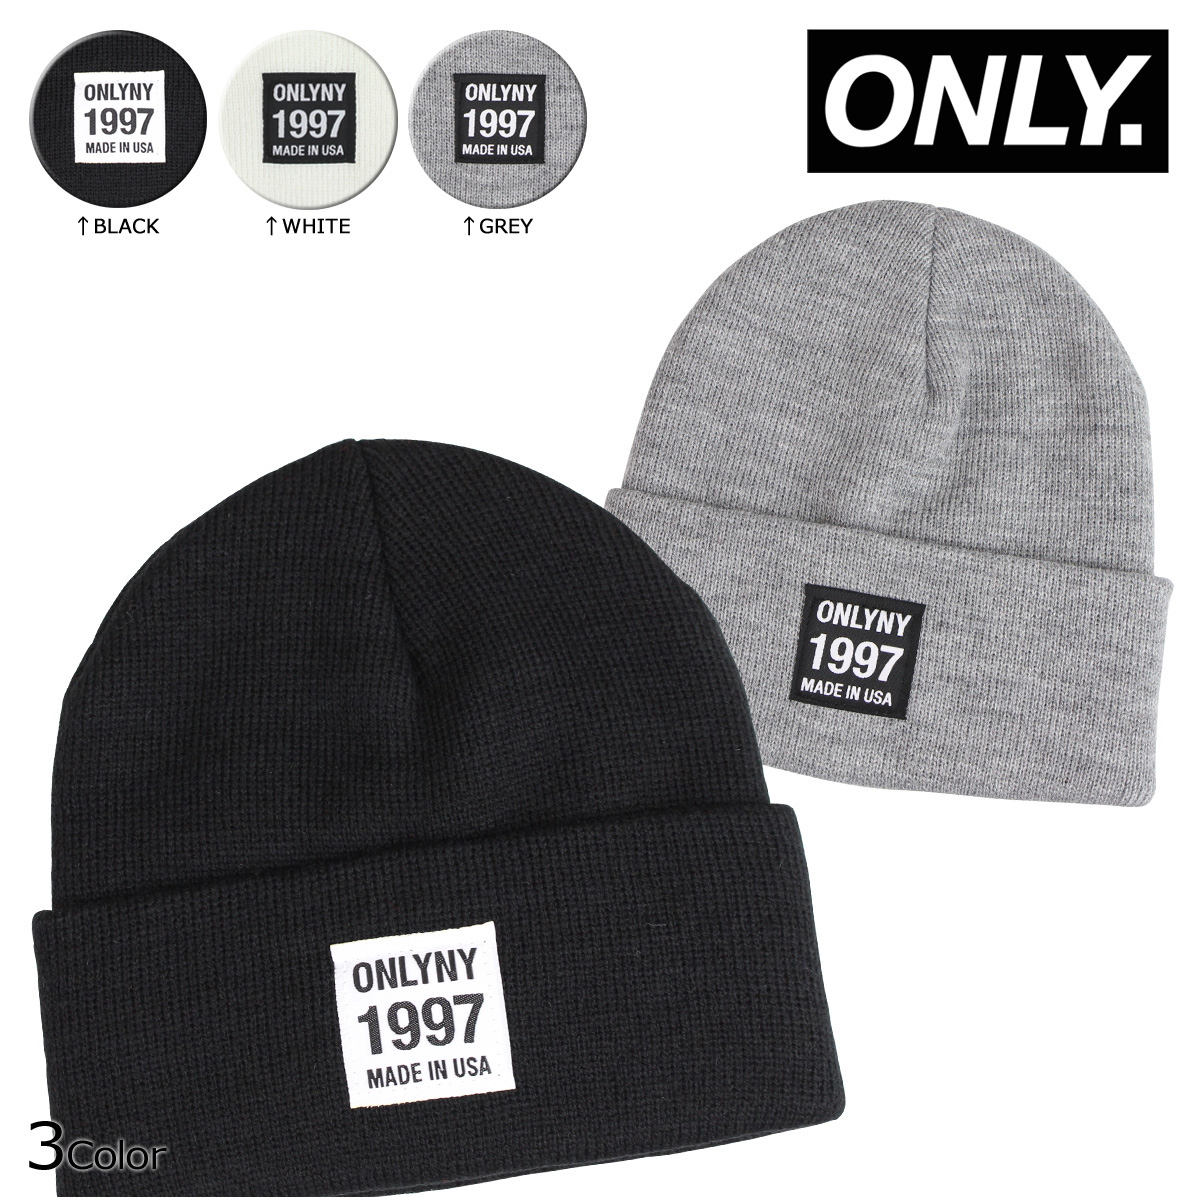 173d5dce0f9 ALLSPORTS  ONLY NY New York only men s knit hat Beanie knit Cap 3 color  TRANSFER BEANIE  12   10 new in stock